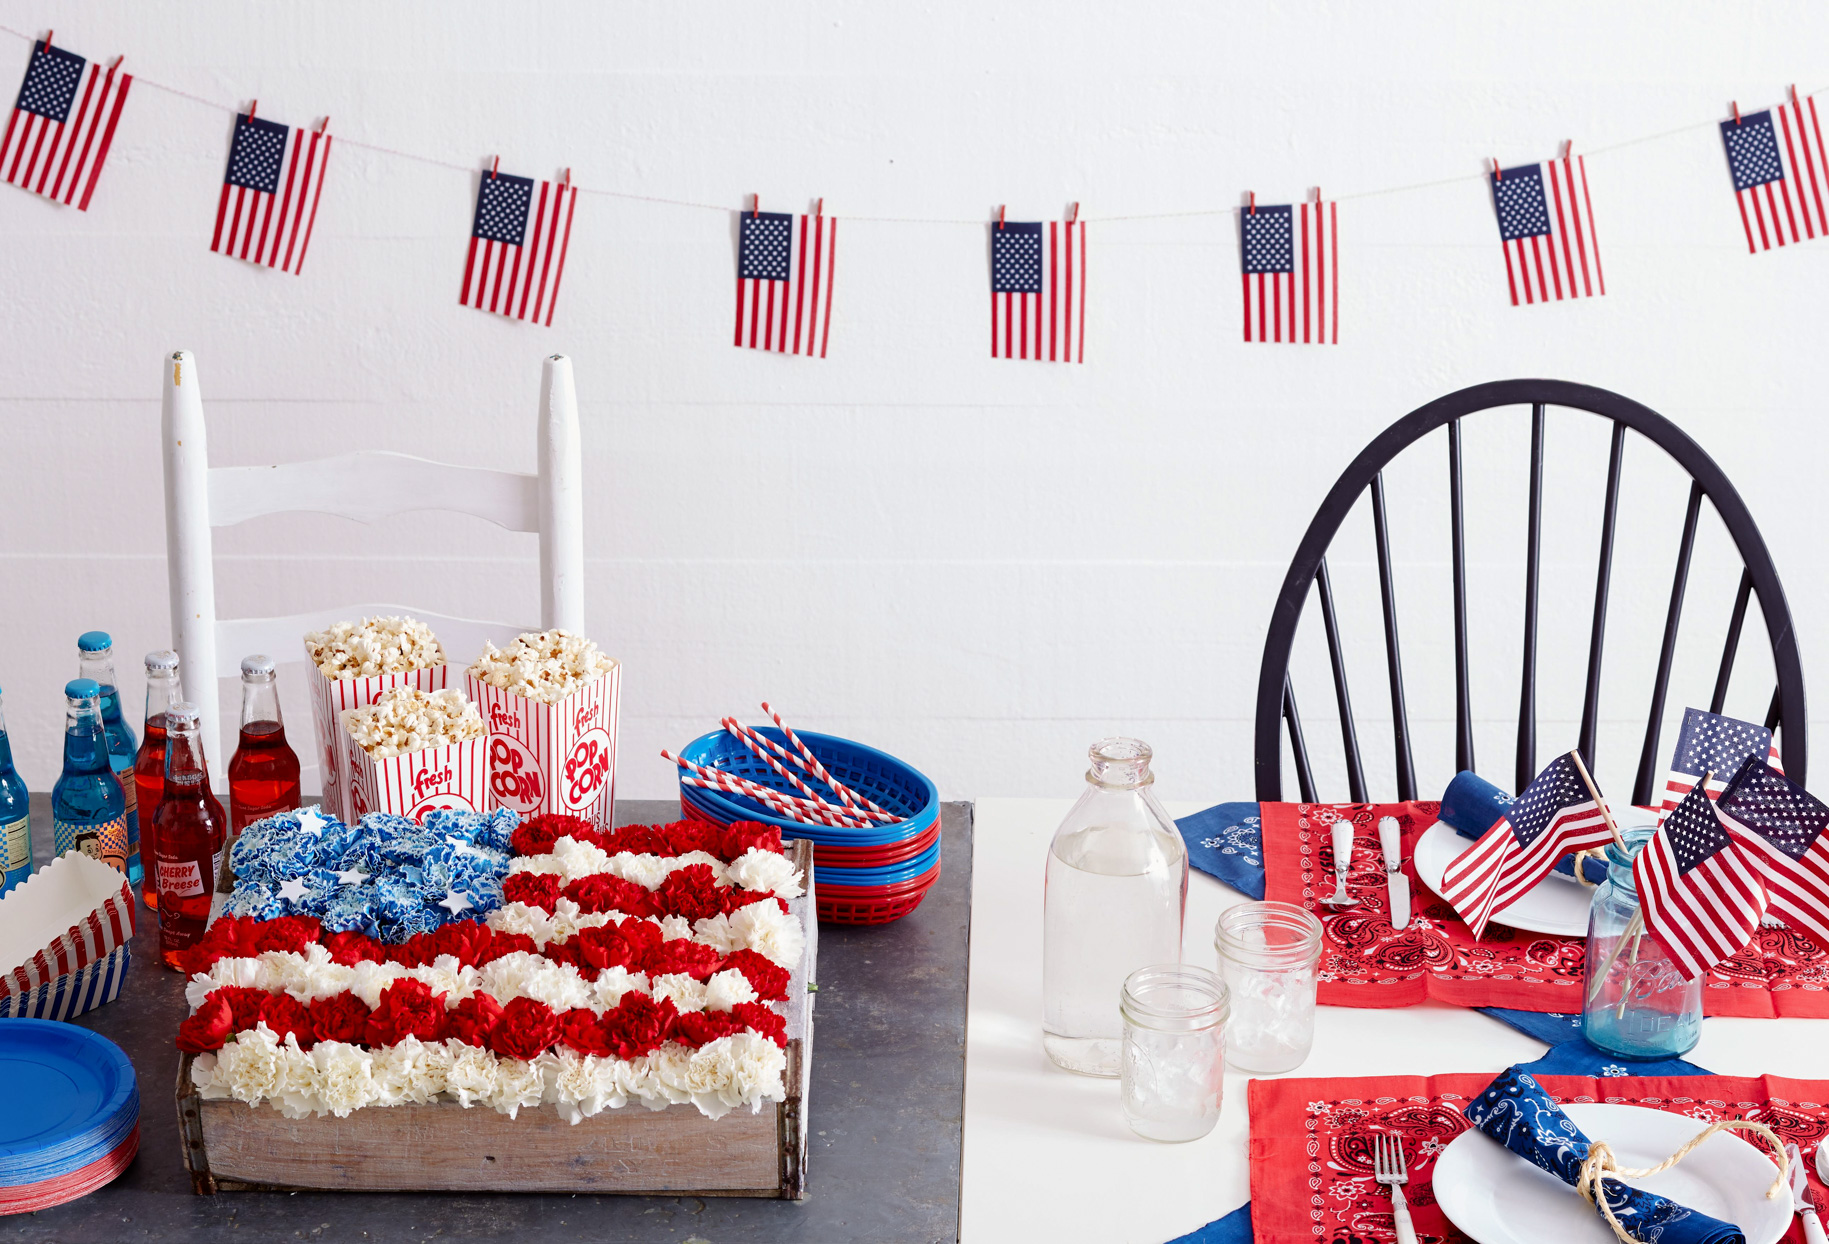 patriotic table with flag banner and place settings